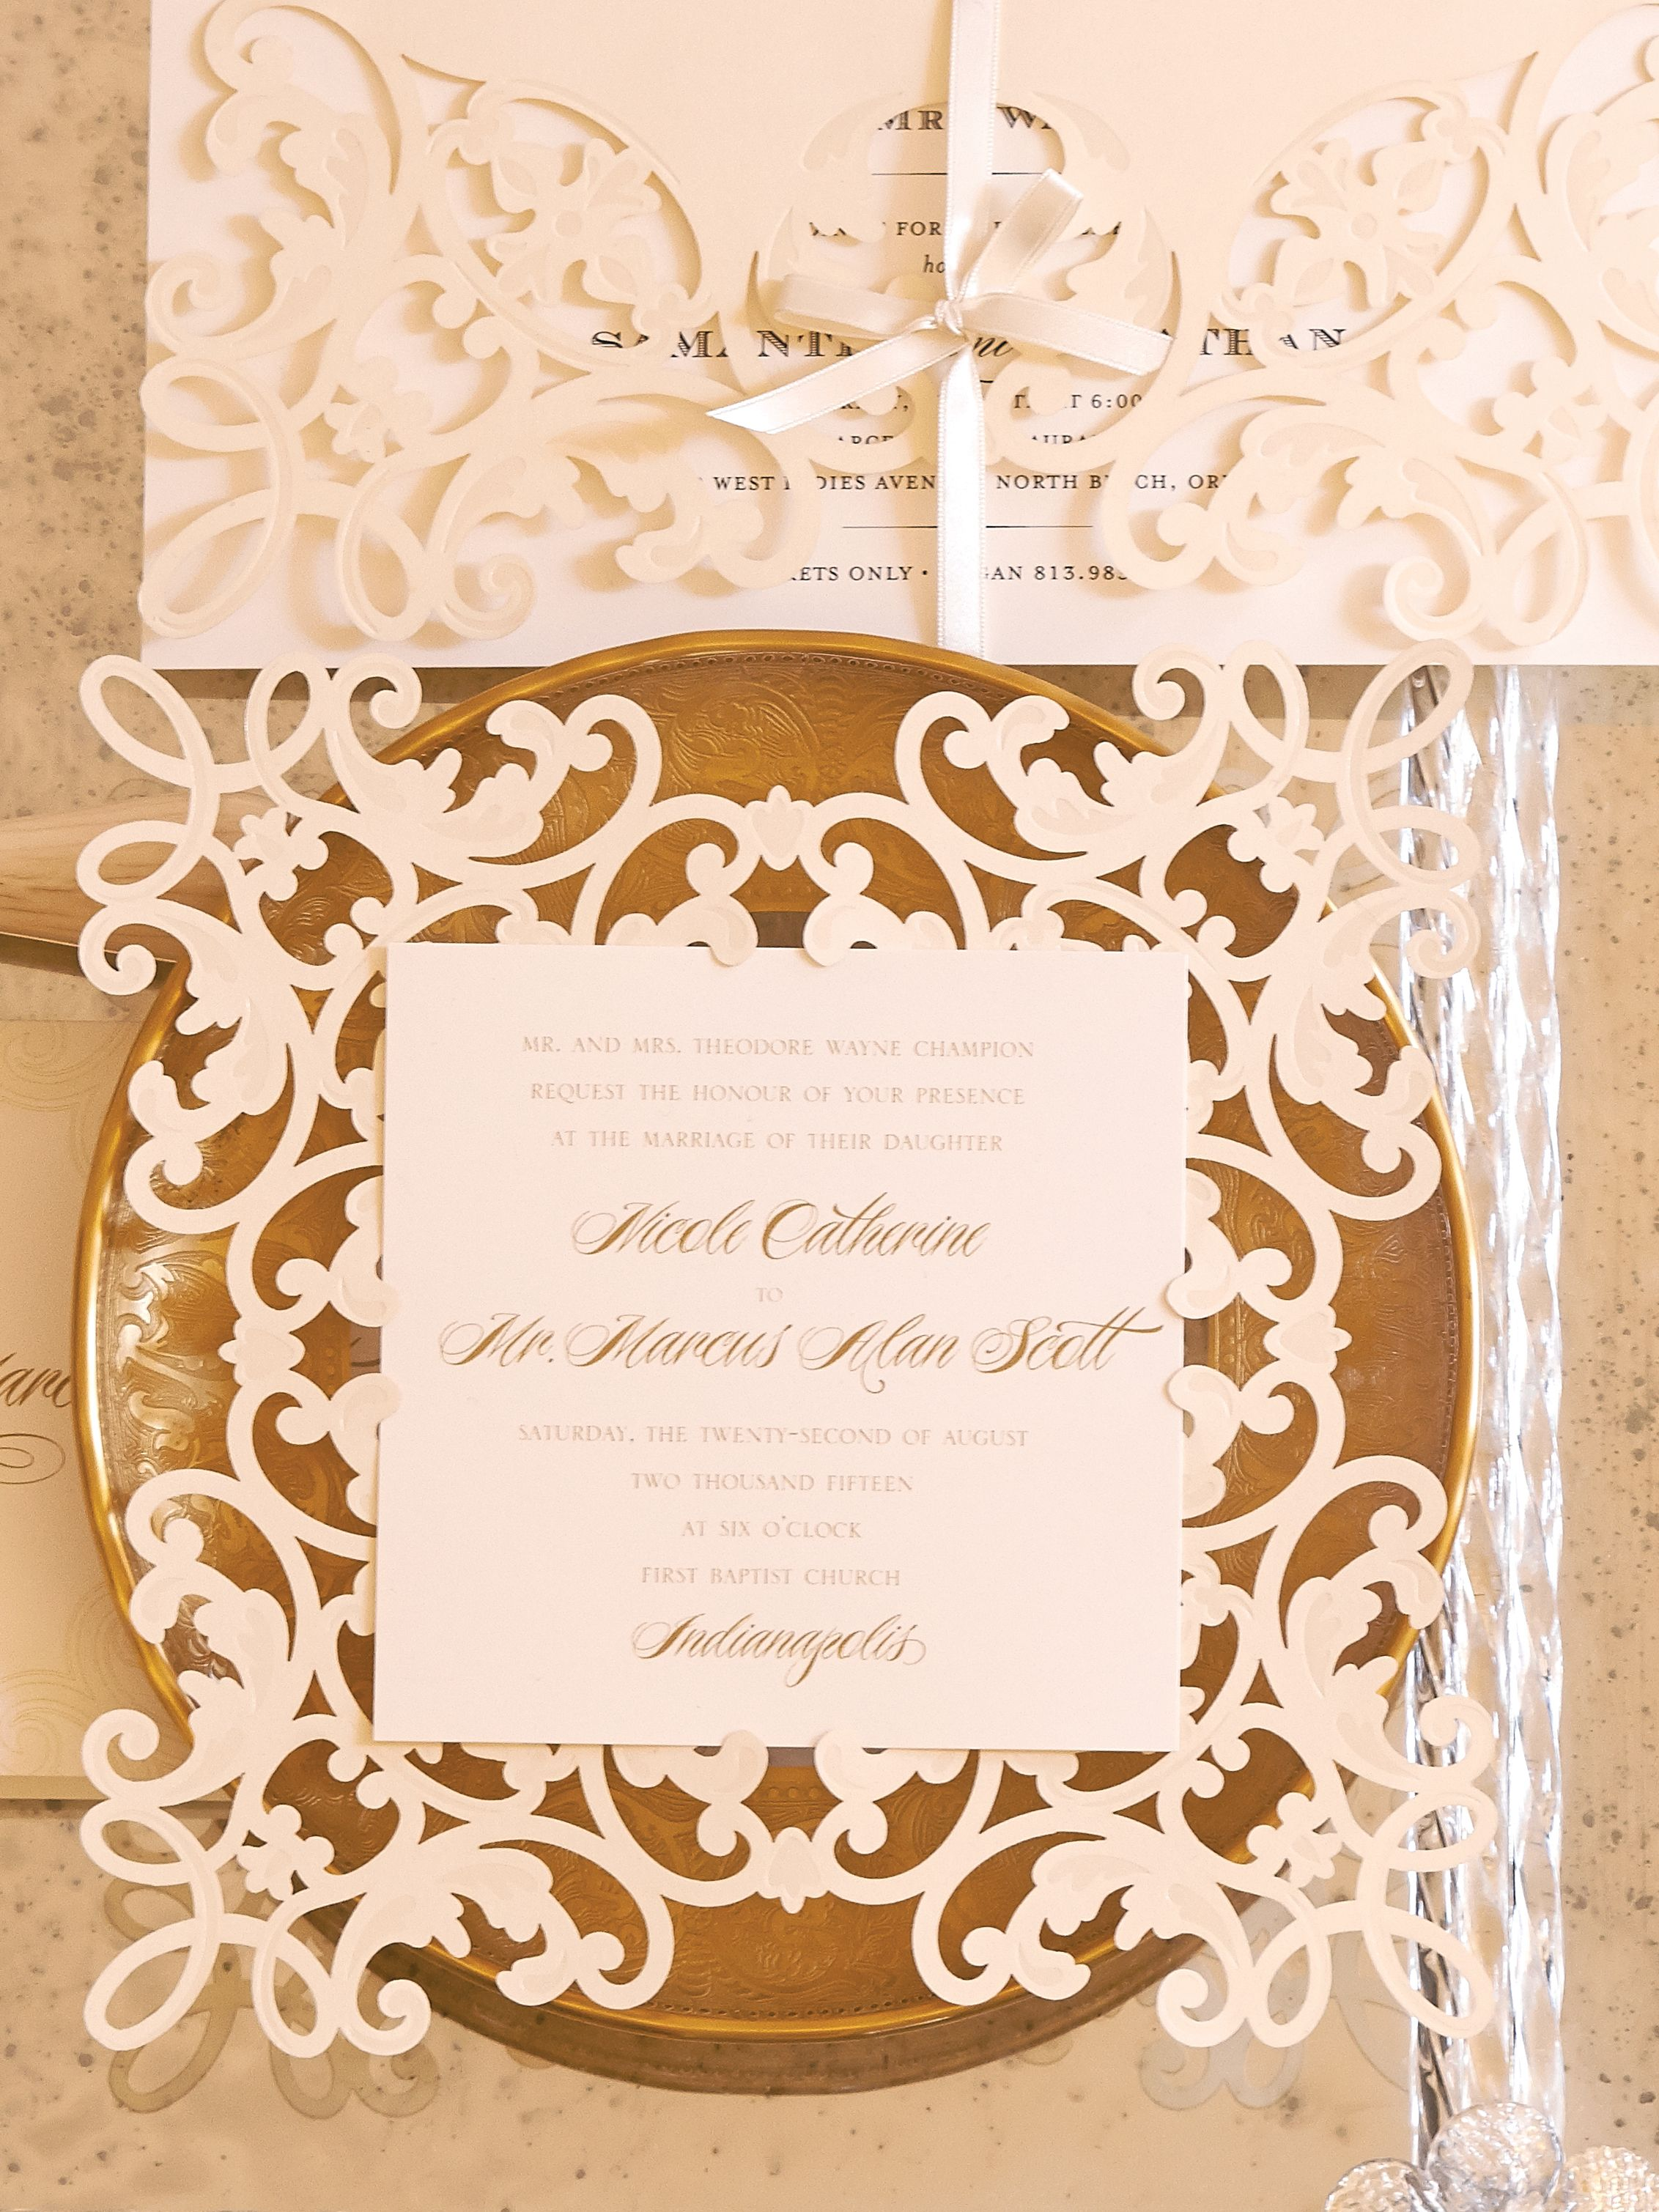 Ideas For Wedding Gift Notes : ... wedding gift thank you notes for wedding shower gifts wording ideas